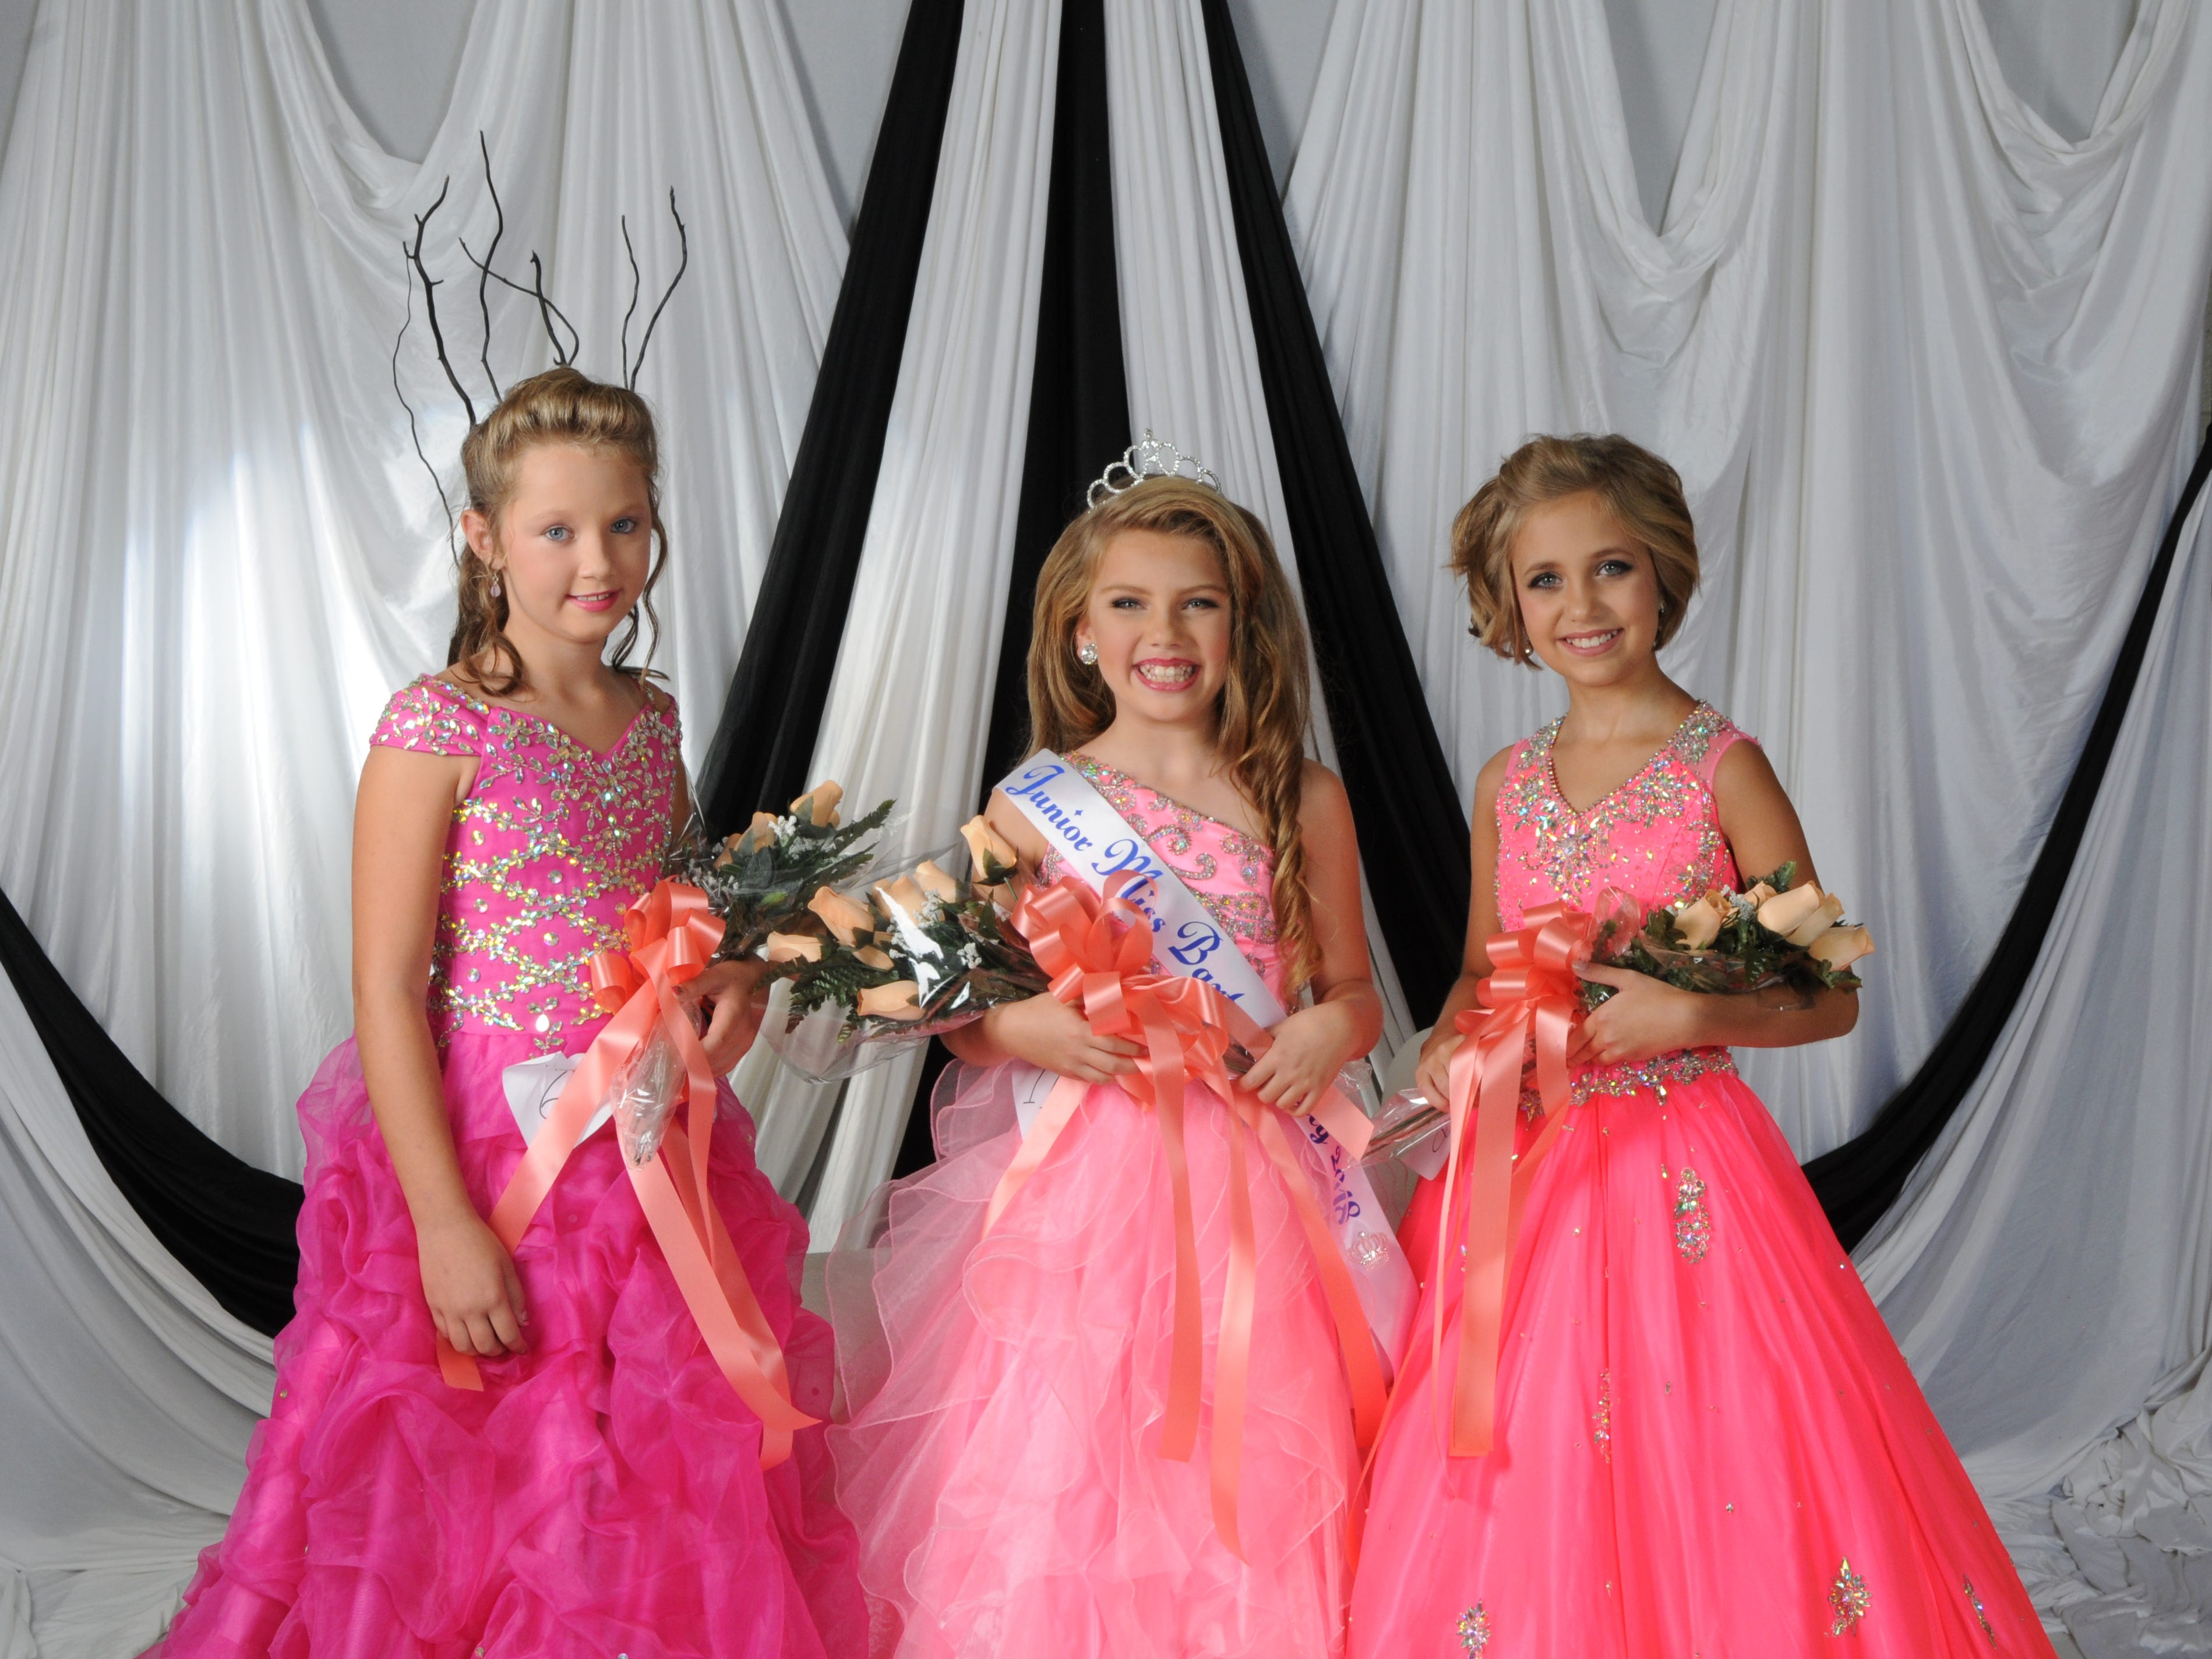 Isabella Sanders (center), the daughter of Steven and Danielle Sanders of Mountain Home, was named Junior Miss Baxter County at the annual Baxter County Fair Pageant on Saturday at Dunbar Auditorium. Piper Edington (right), daughter of Jeff and Carla Edington of Mountain Home, was first alternate; Jaycie Burroughs (left), daughter of Jason and Candace McCoy of Gassville, was second alternate; and Morgan Price (not pictured), daughter of Kyle and Angela Price of Mountain Home, was the People's Choice winner.